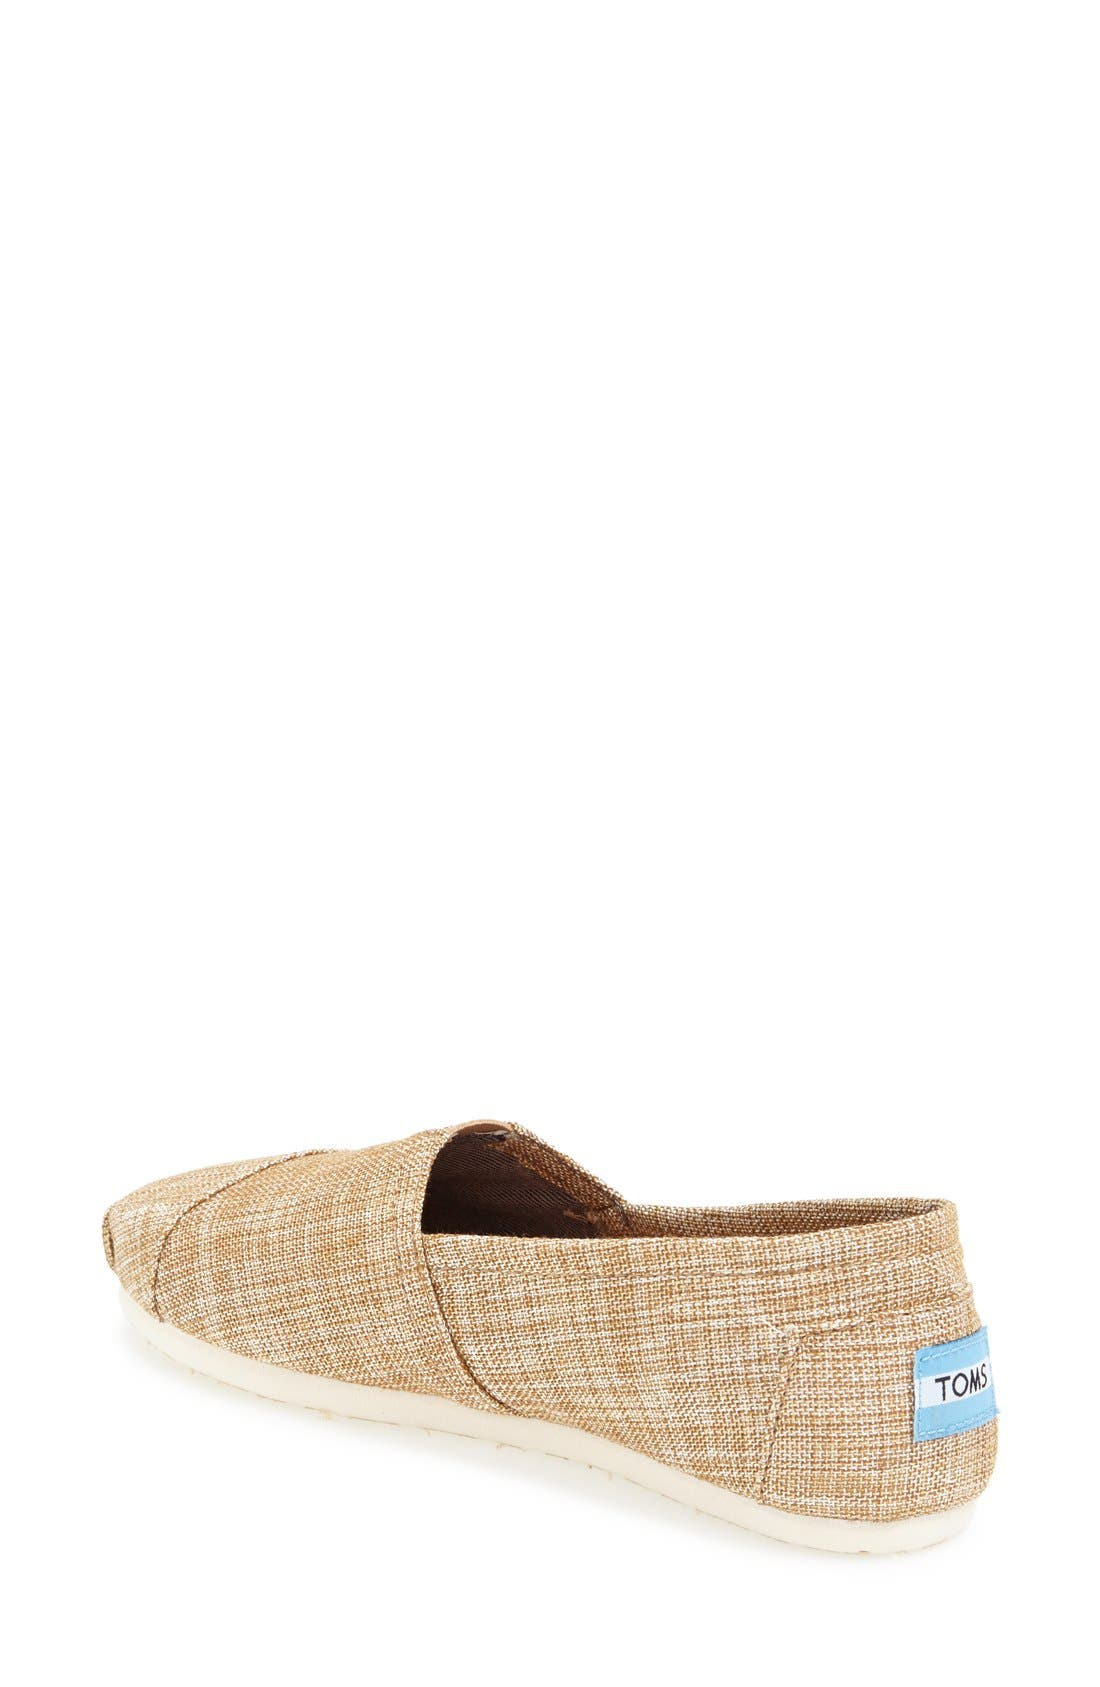 Alternate Image 2  - TOMS 'Classic' Metallic Burlap Slip-On (Women)